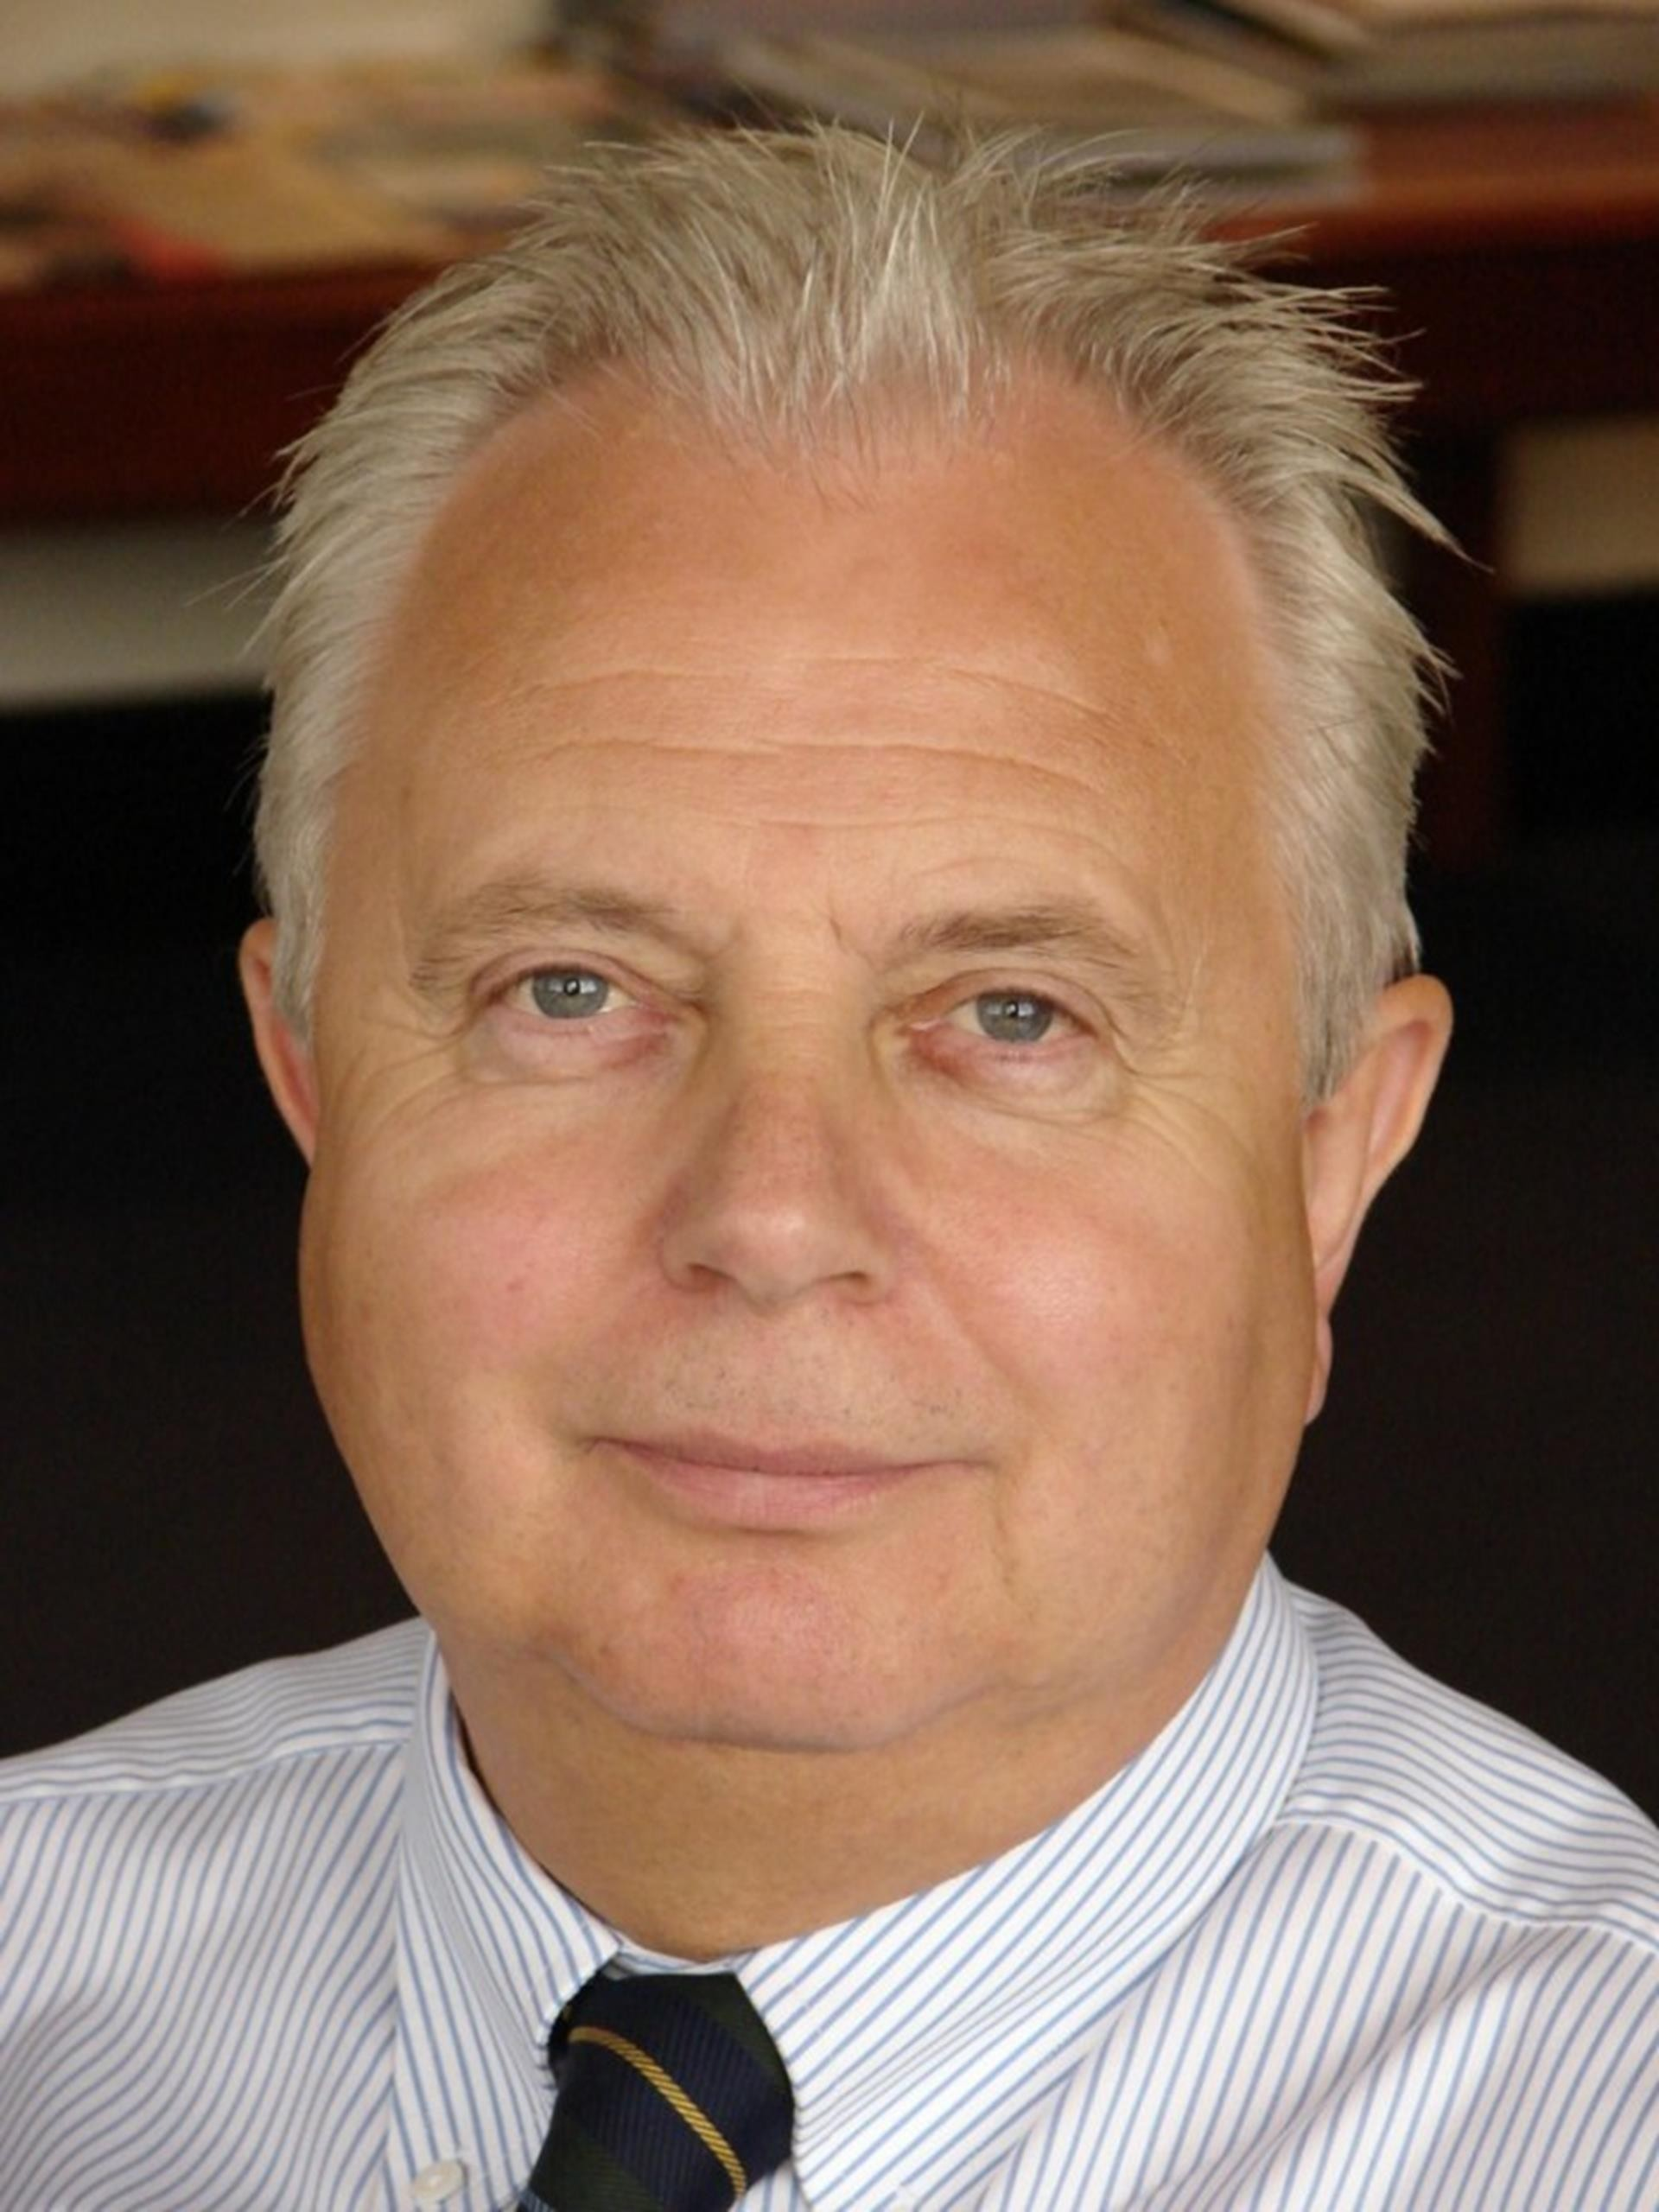 Bill Parfitt, Chairman of GM UK and Vauxhall Motors